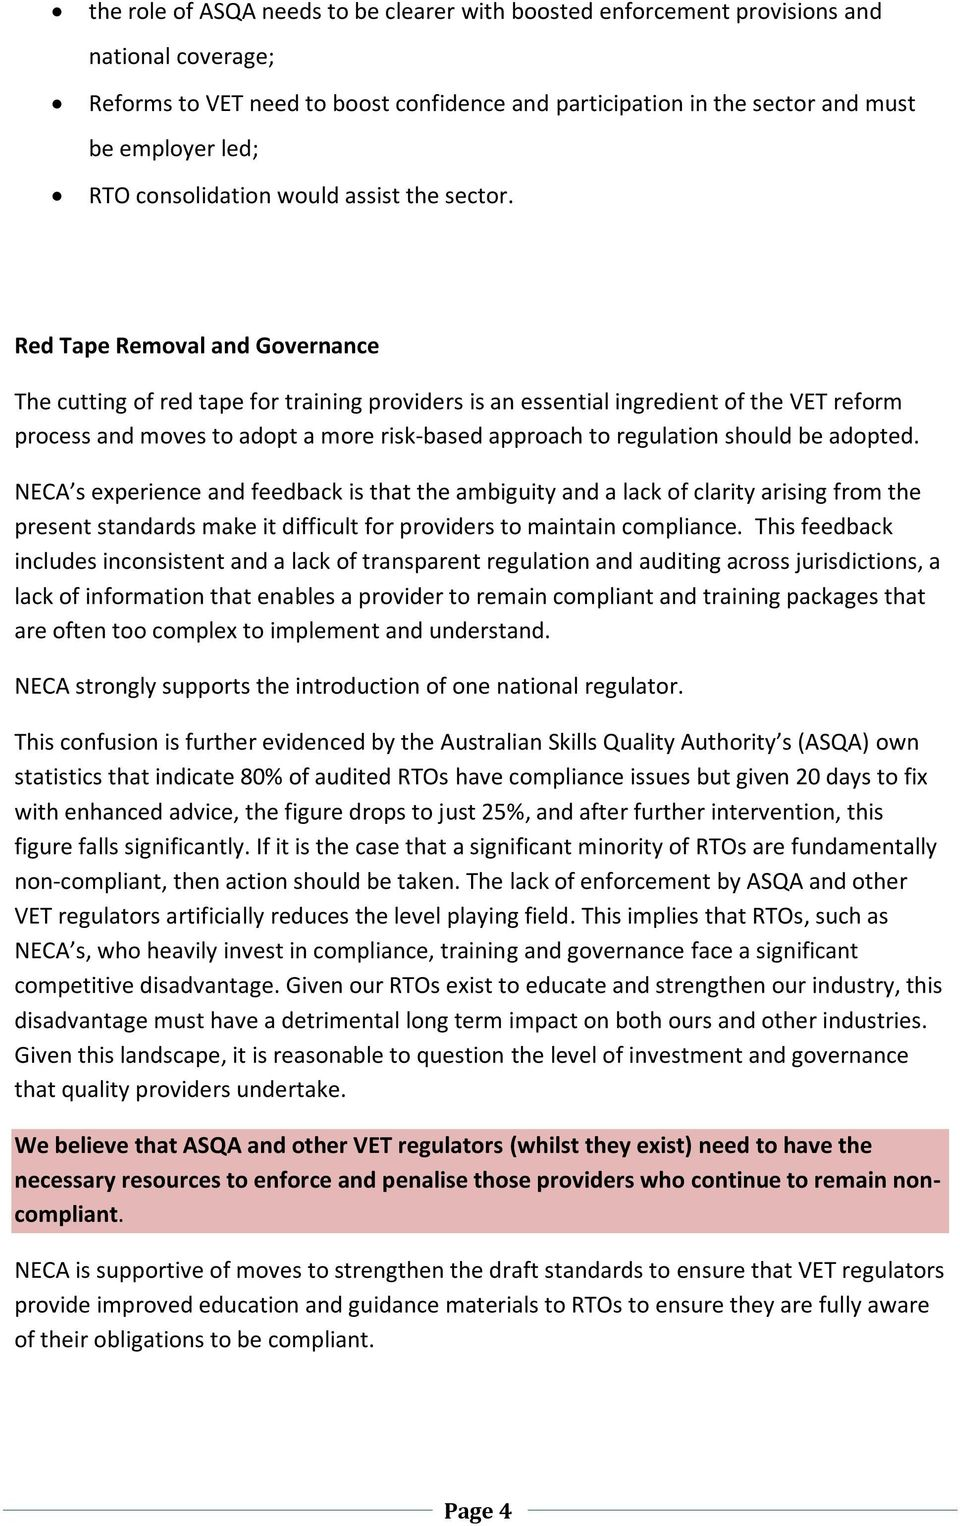 Red Tape Removal and Governance The cutting of red tape for training providers is an essential ingredient of the VET reform process and moves to adopt a more risk-based approach to regulation should